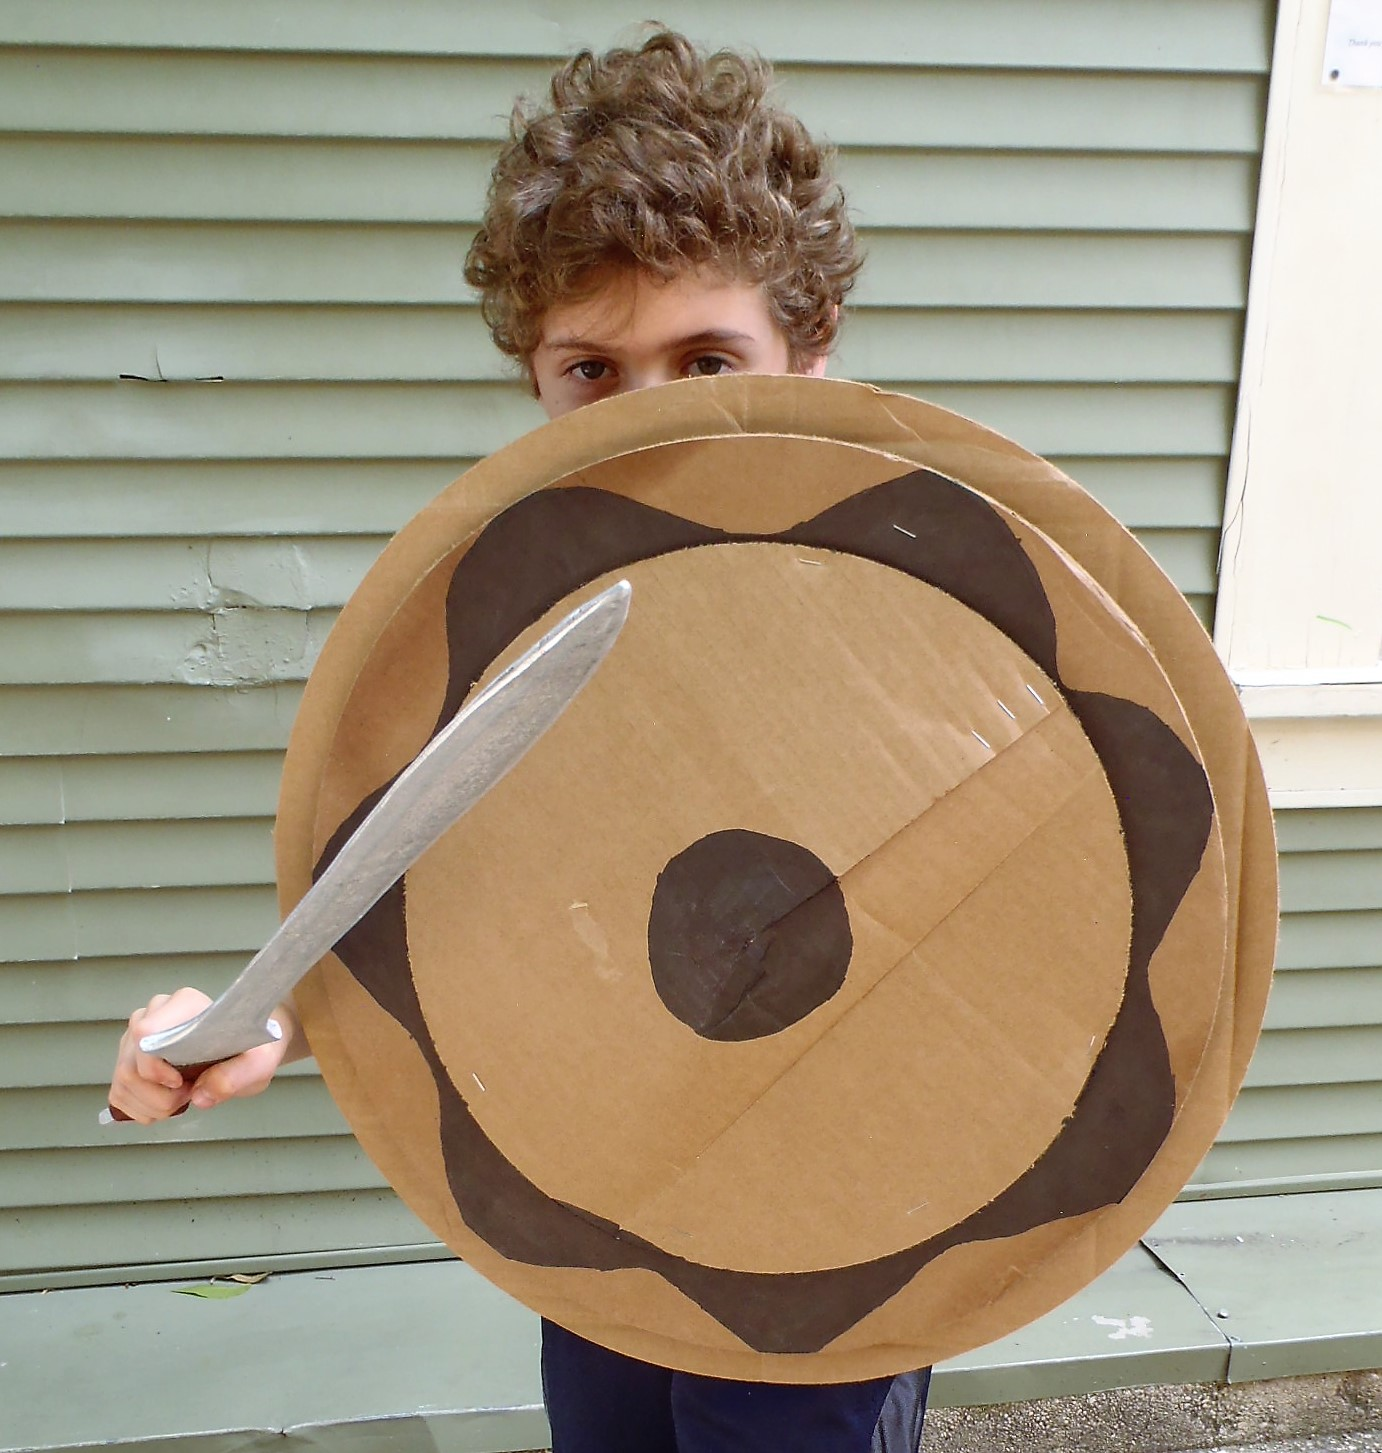 Boy with sword and shield